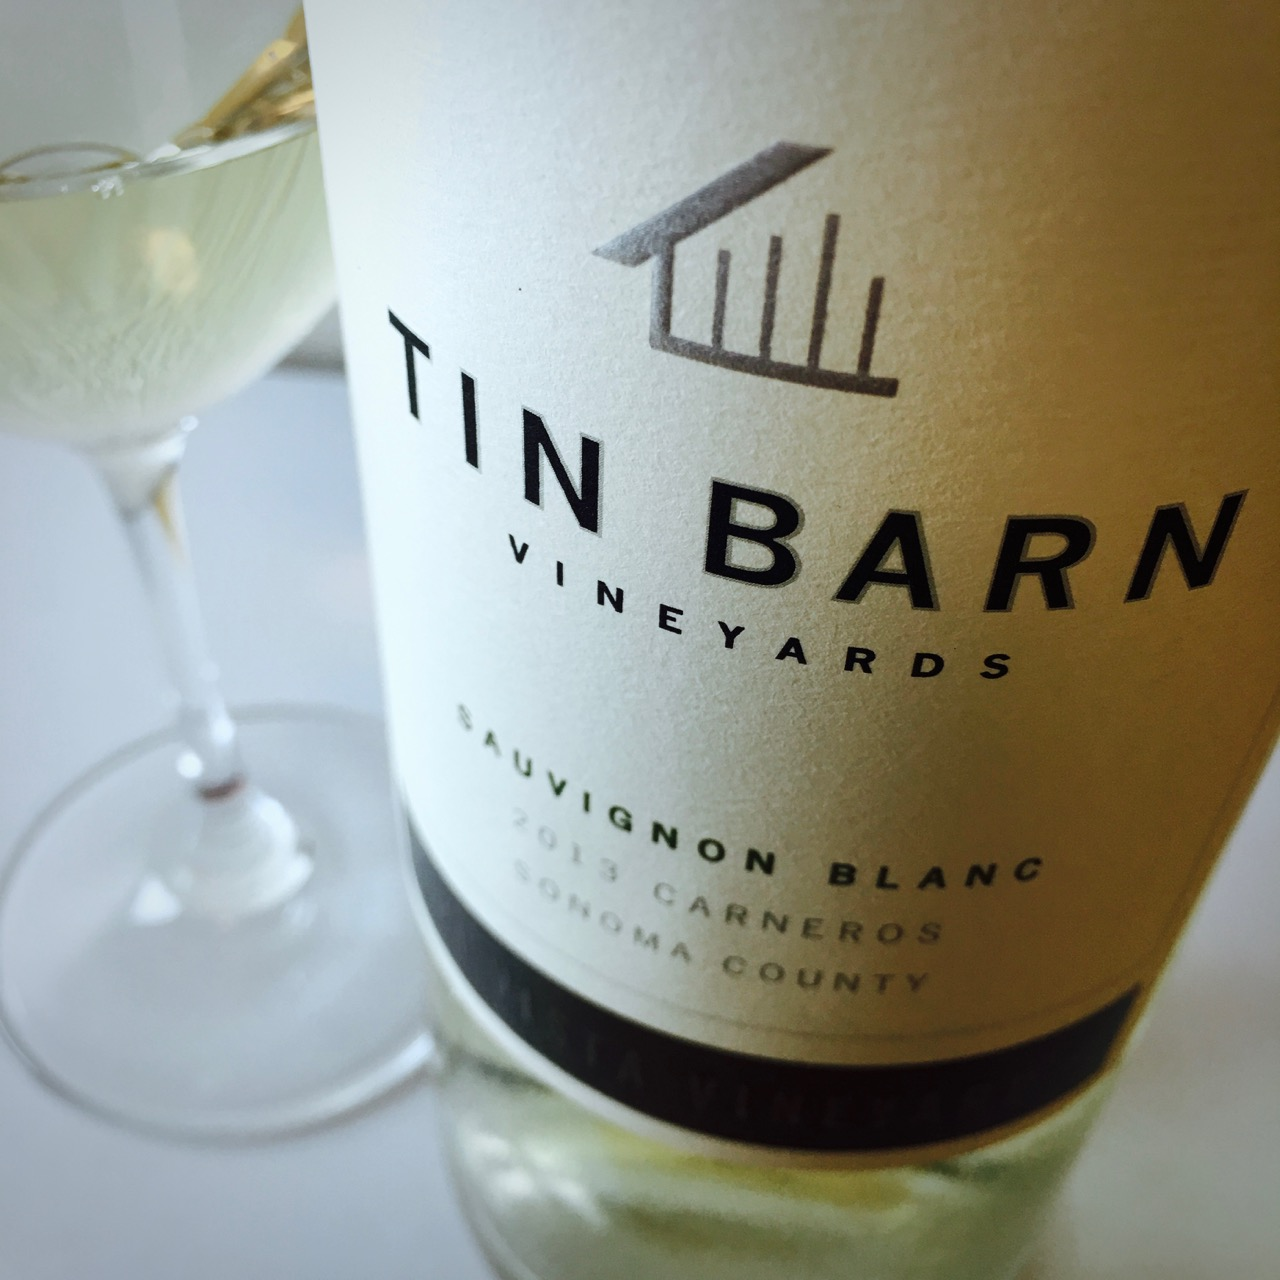 2013 Tin Barn Vineyards Sauvignon Blanc Hi Vista Vineyard Carneros, Sonoma County